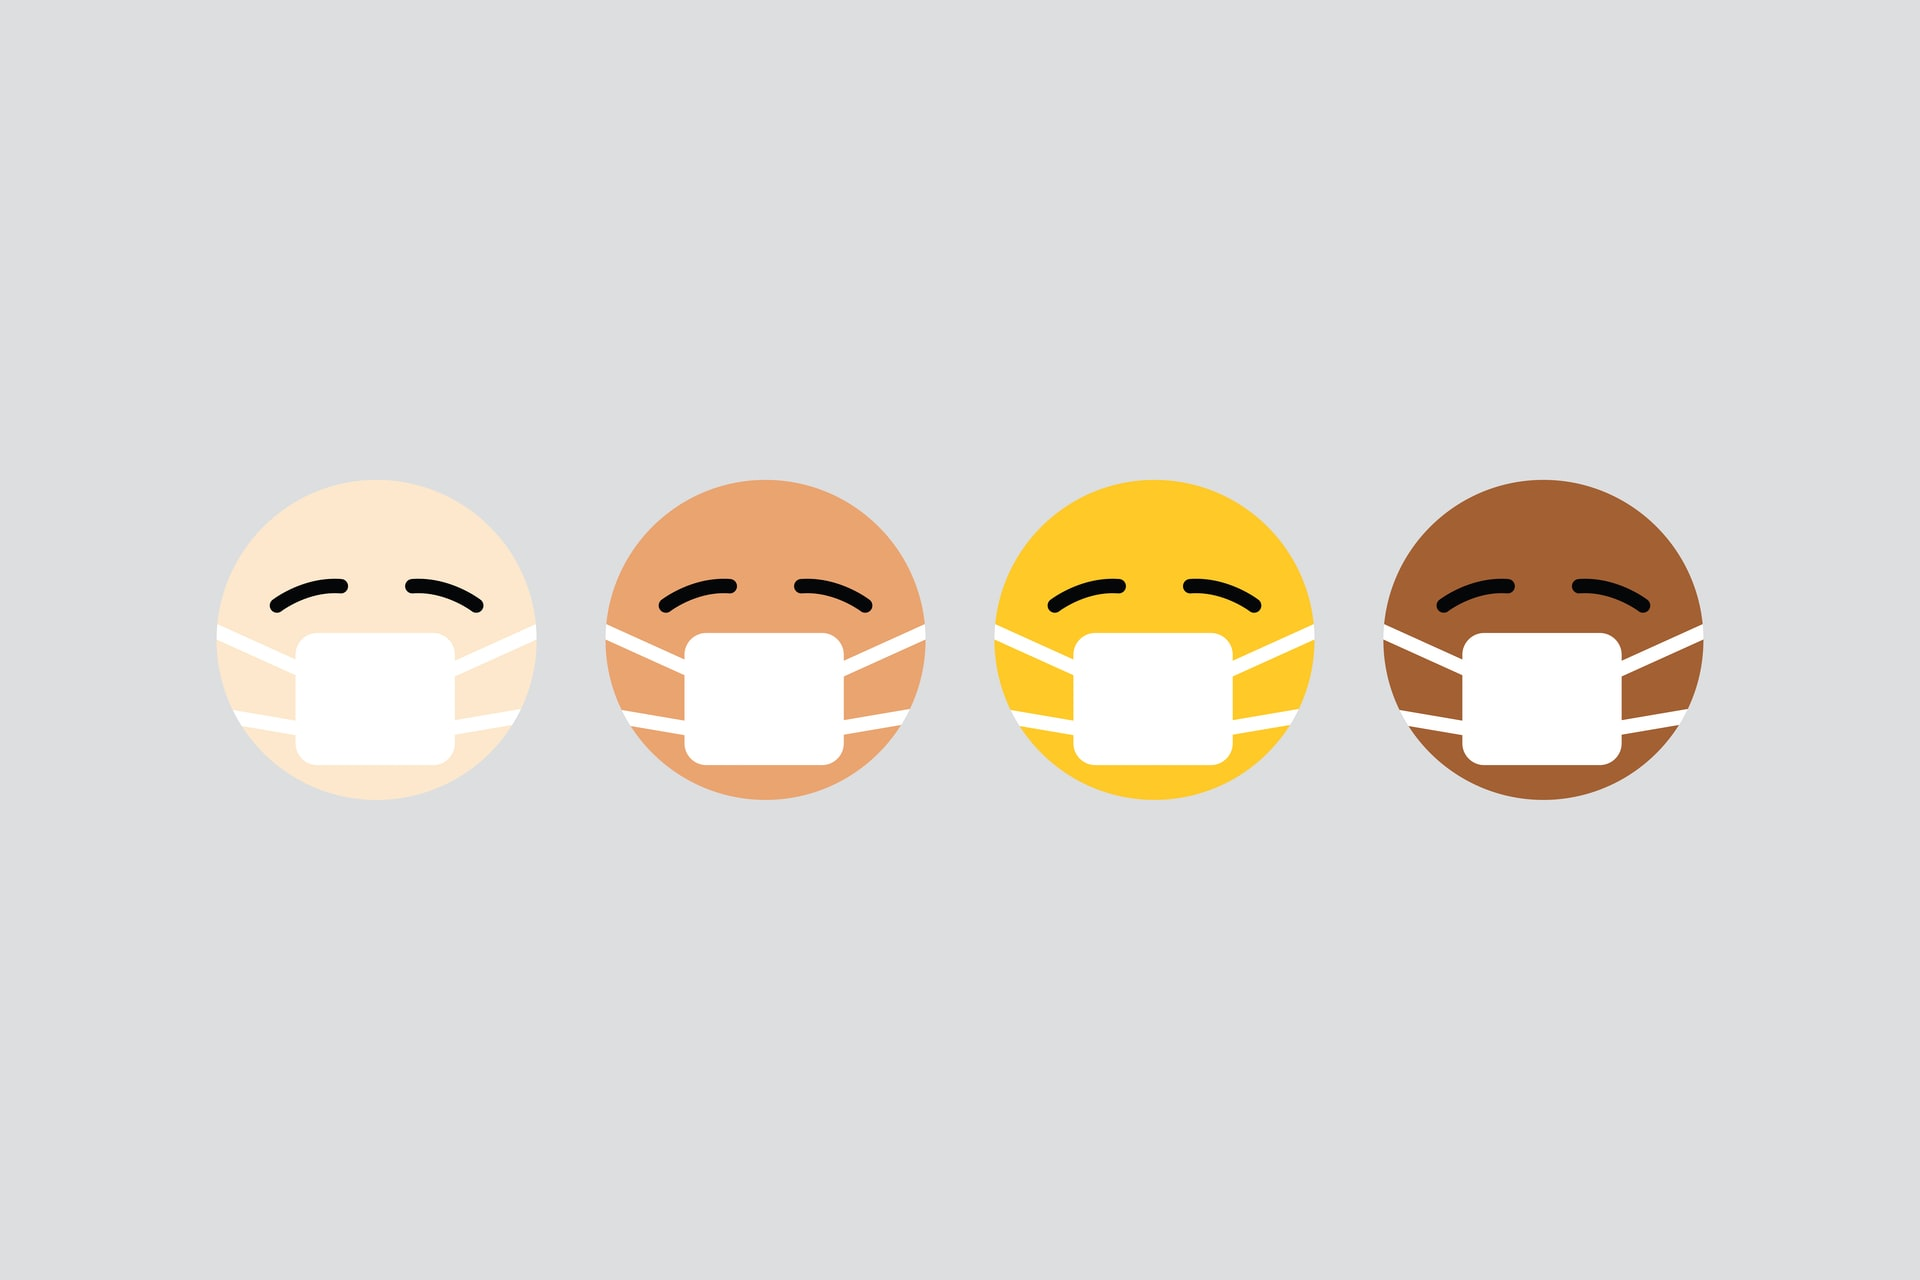 A graphic of emoji-like faces in various skin tones, all wearing face masks.